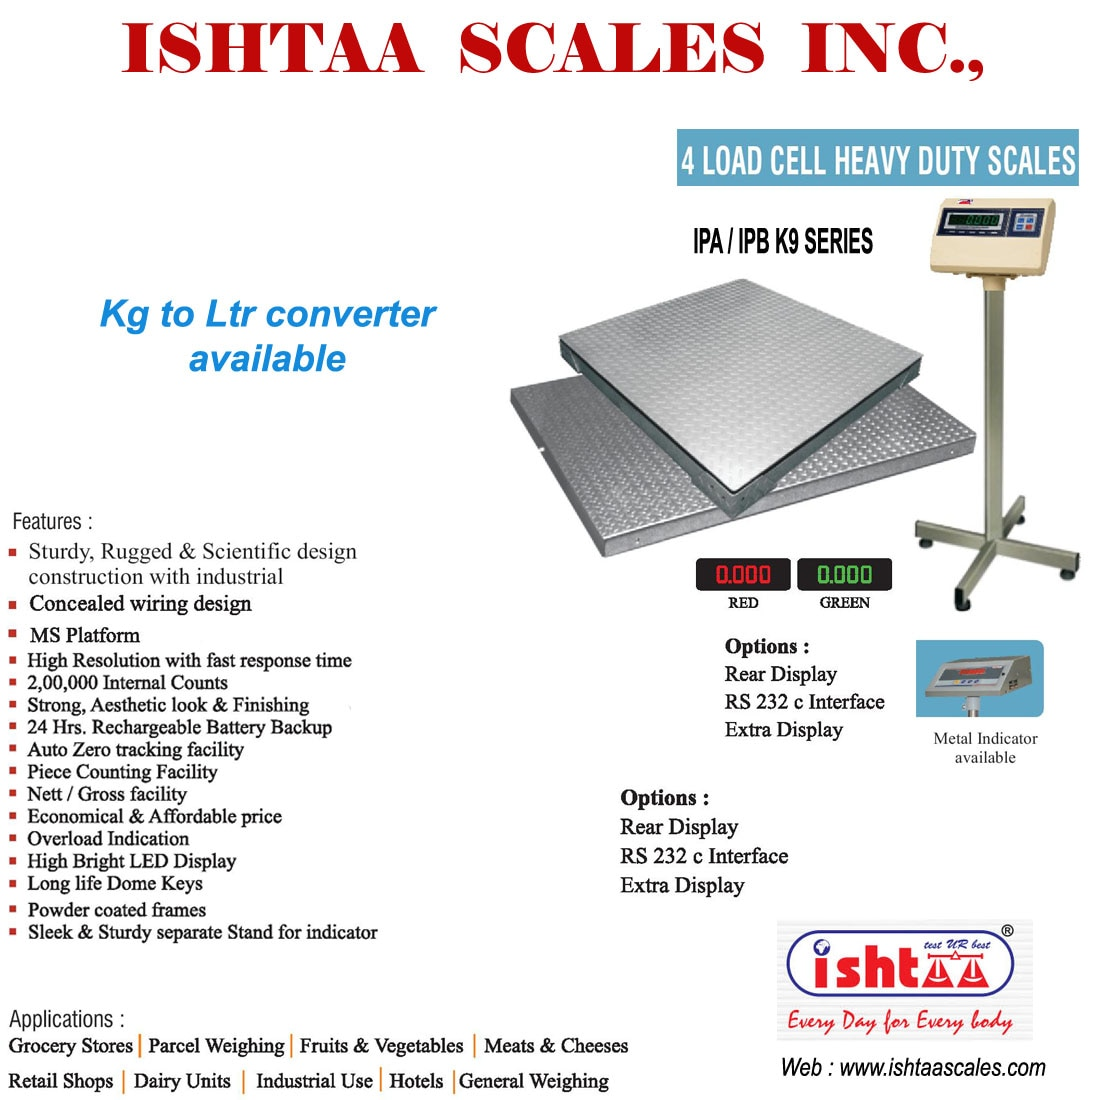 Ishtaa Scales Inc -  Weighing Scale  manufacturer in  Coimbatore.  ISHTAA - 4 Load Cell Heavy Duty Scale  Highly Rigid.. 100% Efficiency.. Kg to Ltr Conversion Available   Recommended Heavy weight Scale for all types of Heavy Duty Applications  Used in all  Industrial weighing Weighing Scale for Steel Factories Parcel weighing Cargo Weighing Heavy duty Weighing Harbour weighing Has WIDE Dealers & Distributors across SOUTHERN INDIA. Heavy duty digital Weighing Scales with Special Features & Desired Specifications are AVAILABLE here.  To Know More Visit : http://www.ishtaascales.com/bench-scales-ipa-ipb-4lc.html   CALL: 09843016028 ; 0422-4516575 Mail: online@ishtaascales.com Web: www.ishtaascales.com